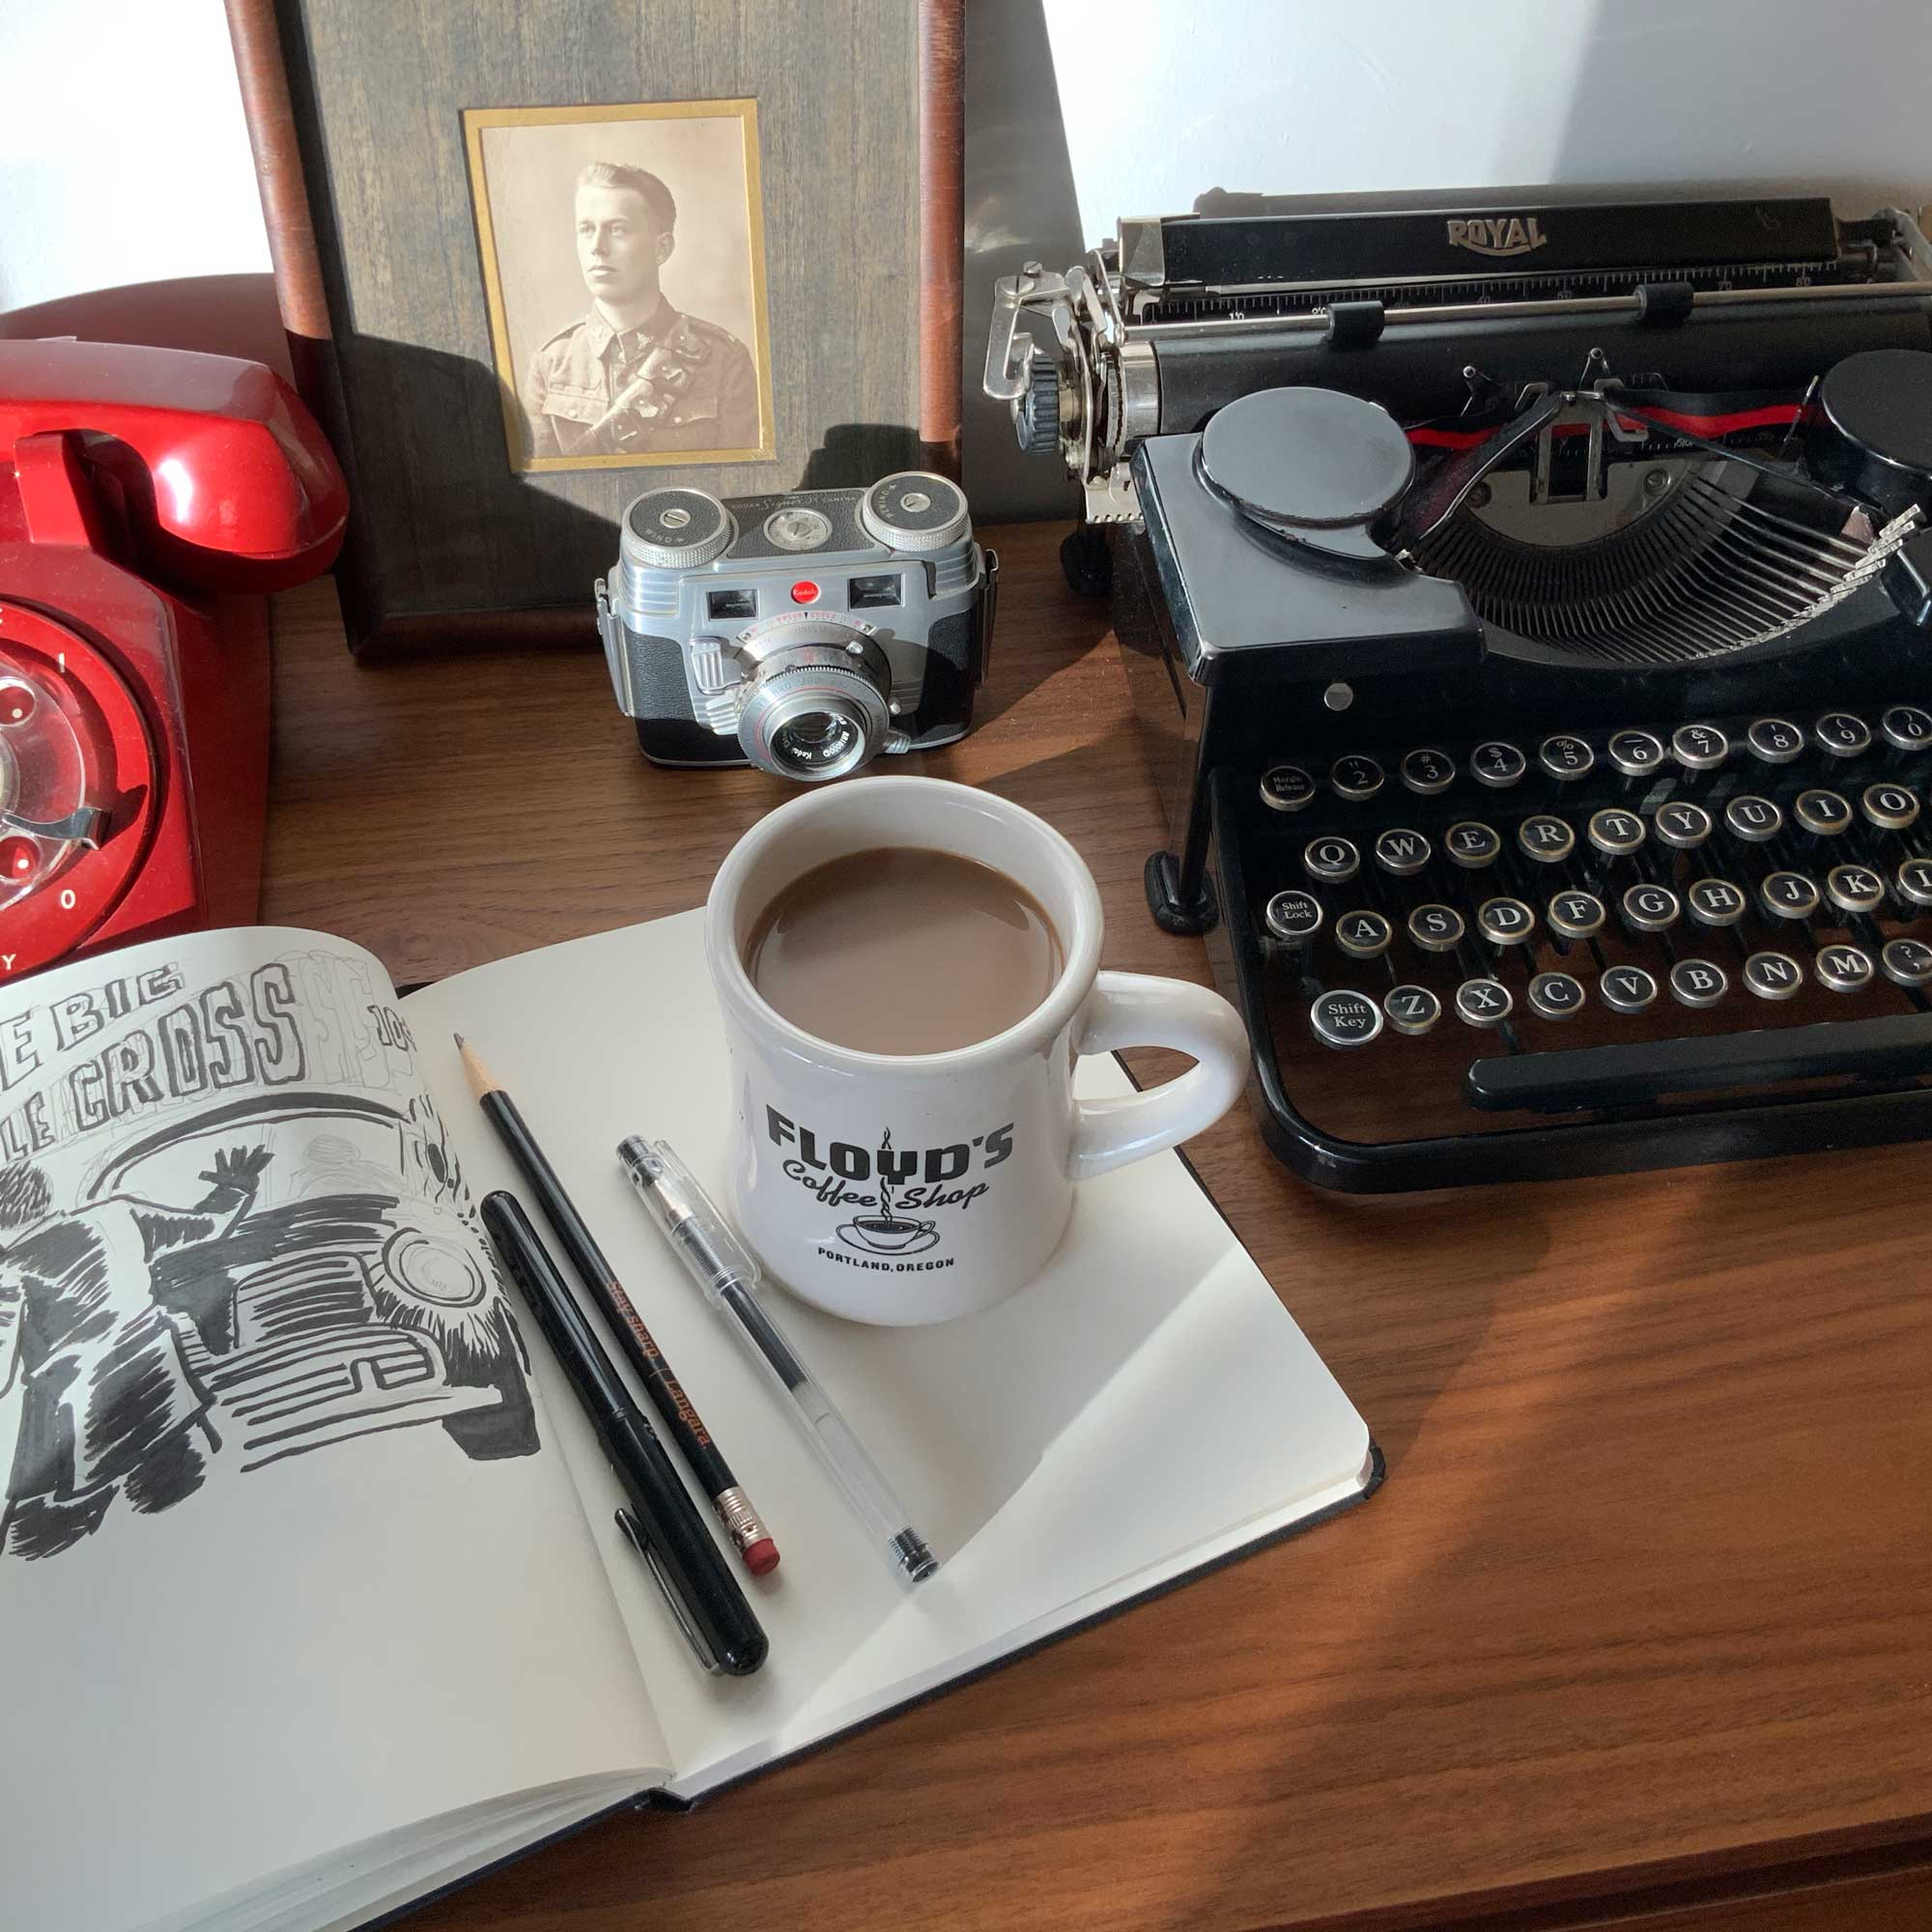 Photo fo sketchbook, a coffee cup, old camera and an old Royal typewriter.